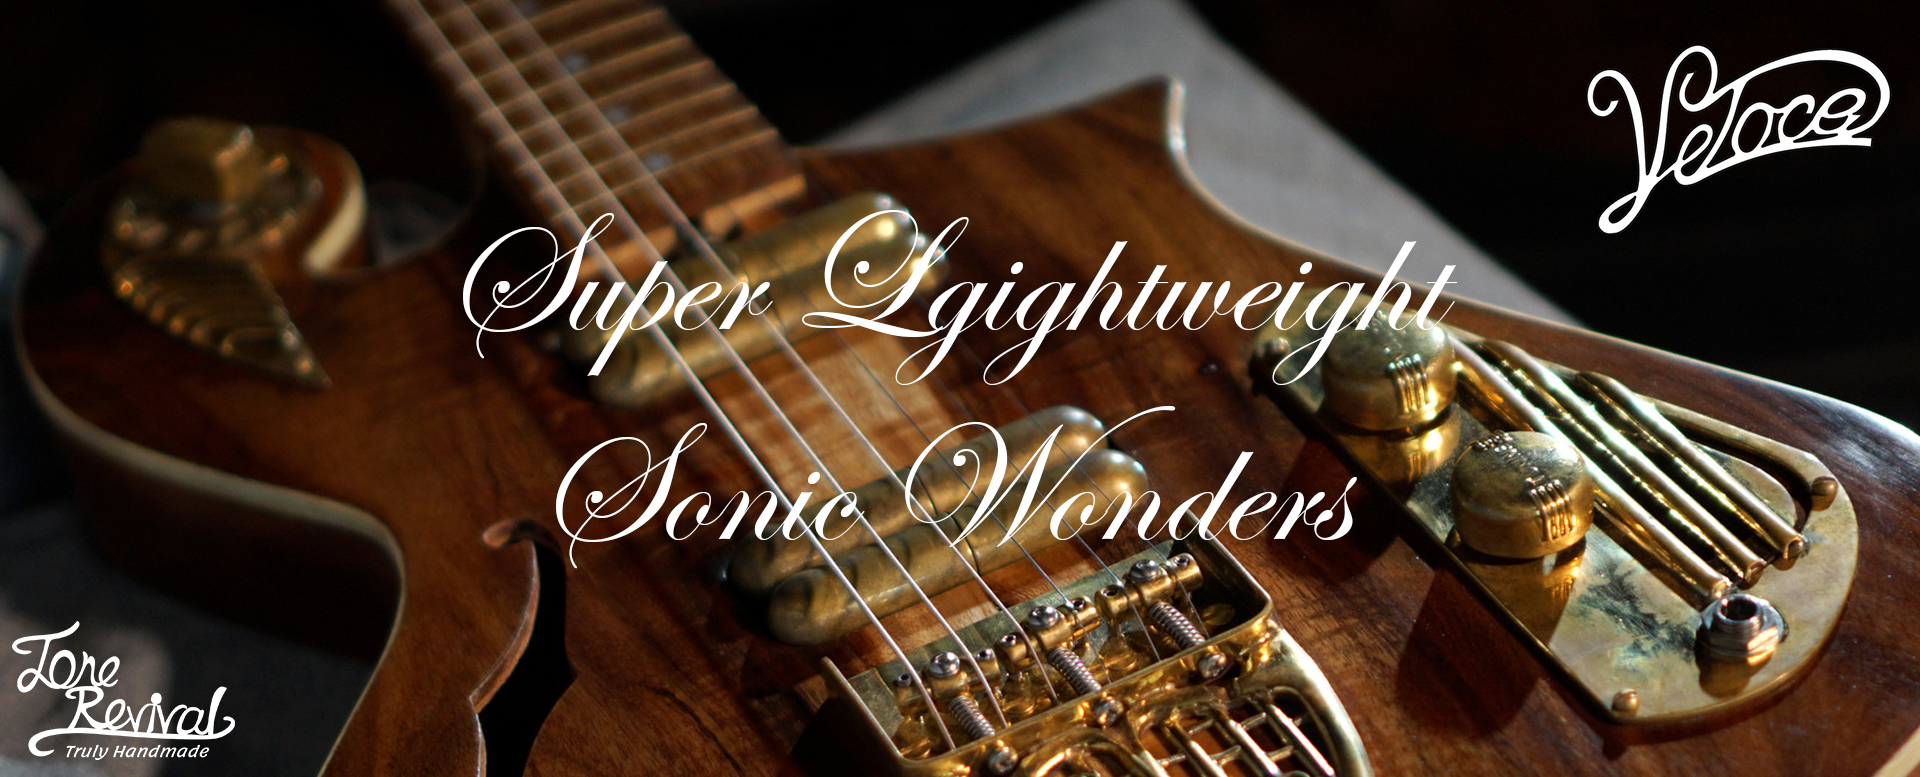 unique guitars - super lightweight sonic wonders by Tone Revival Guitars